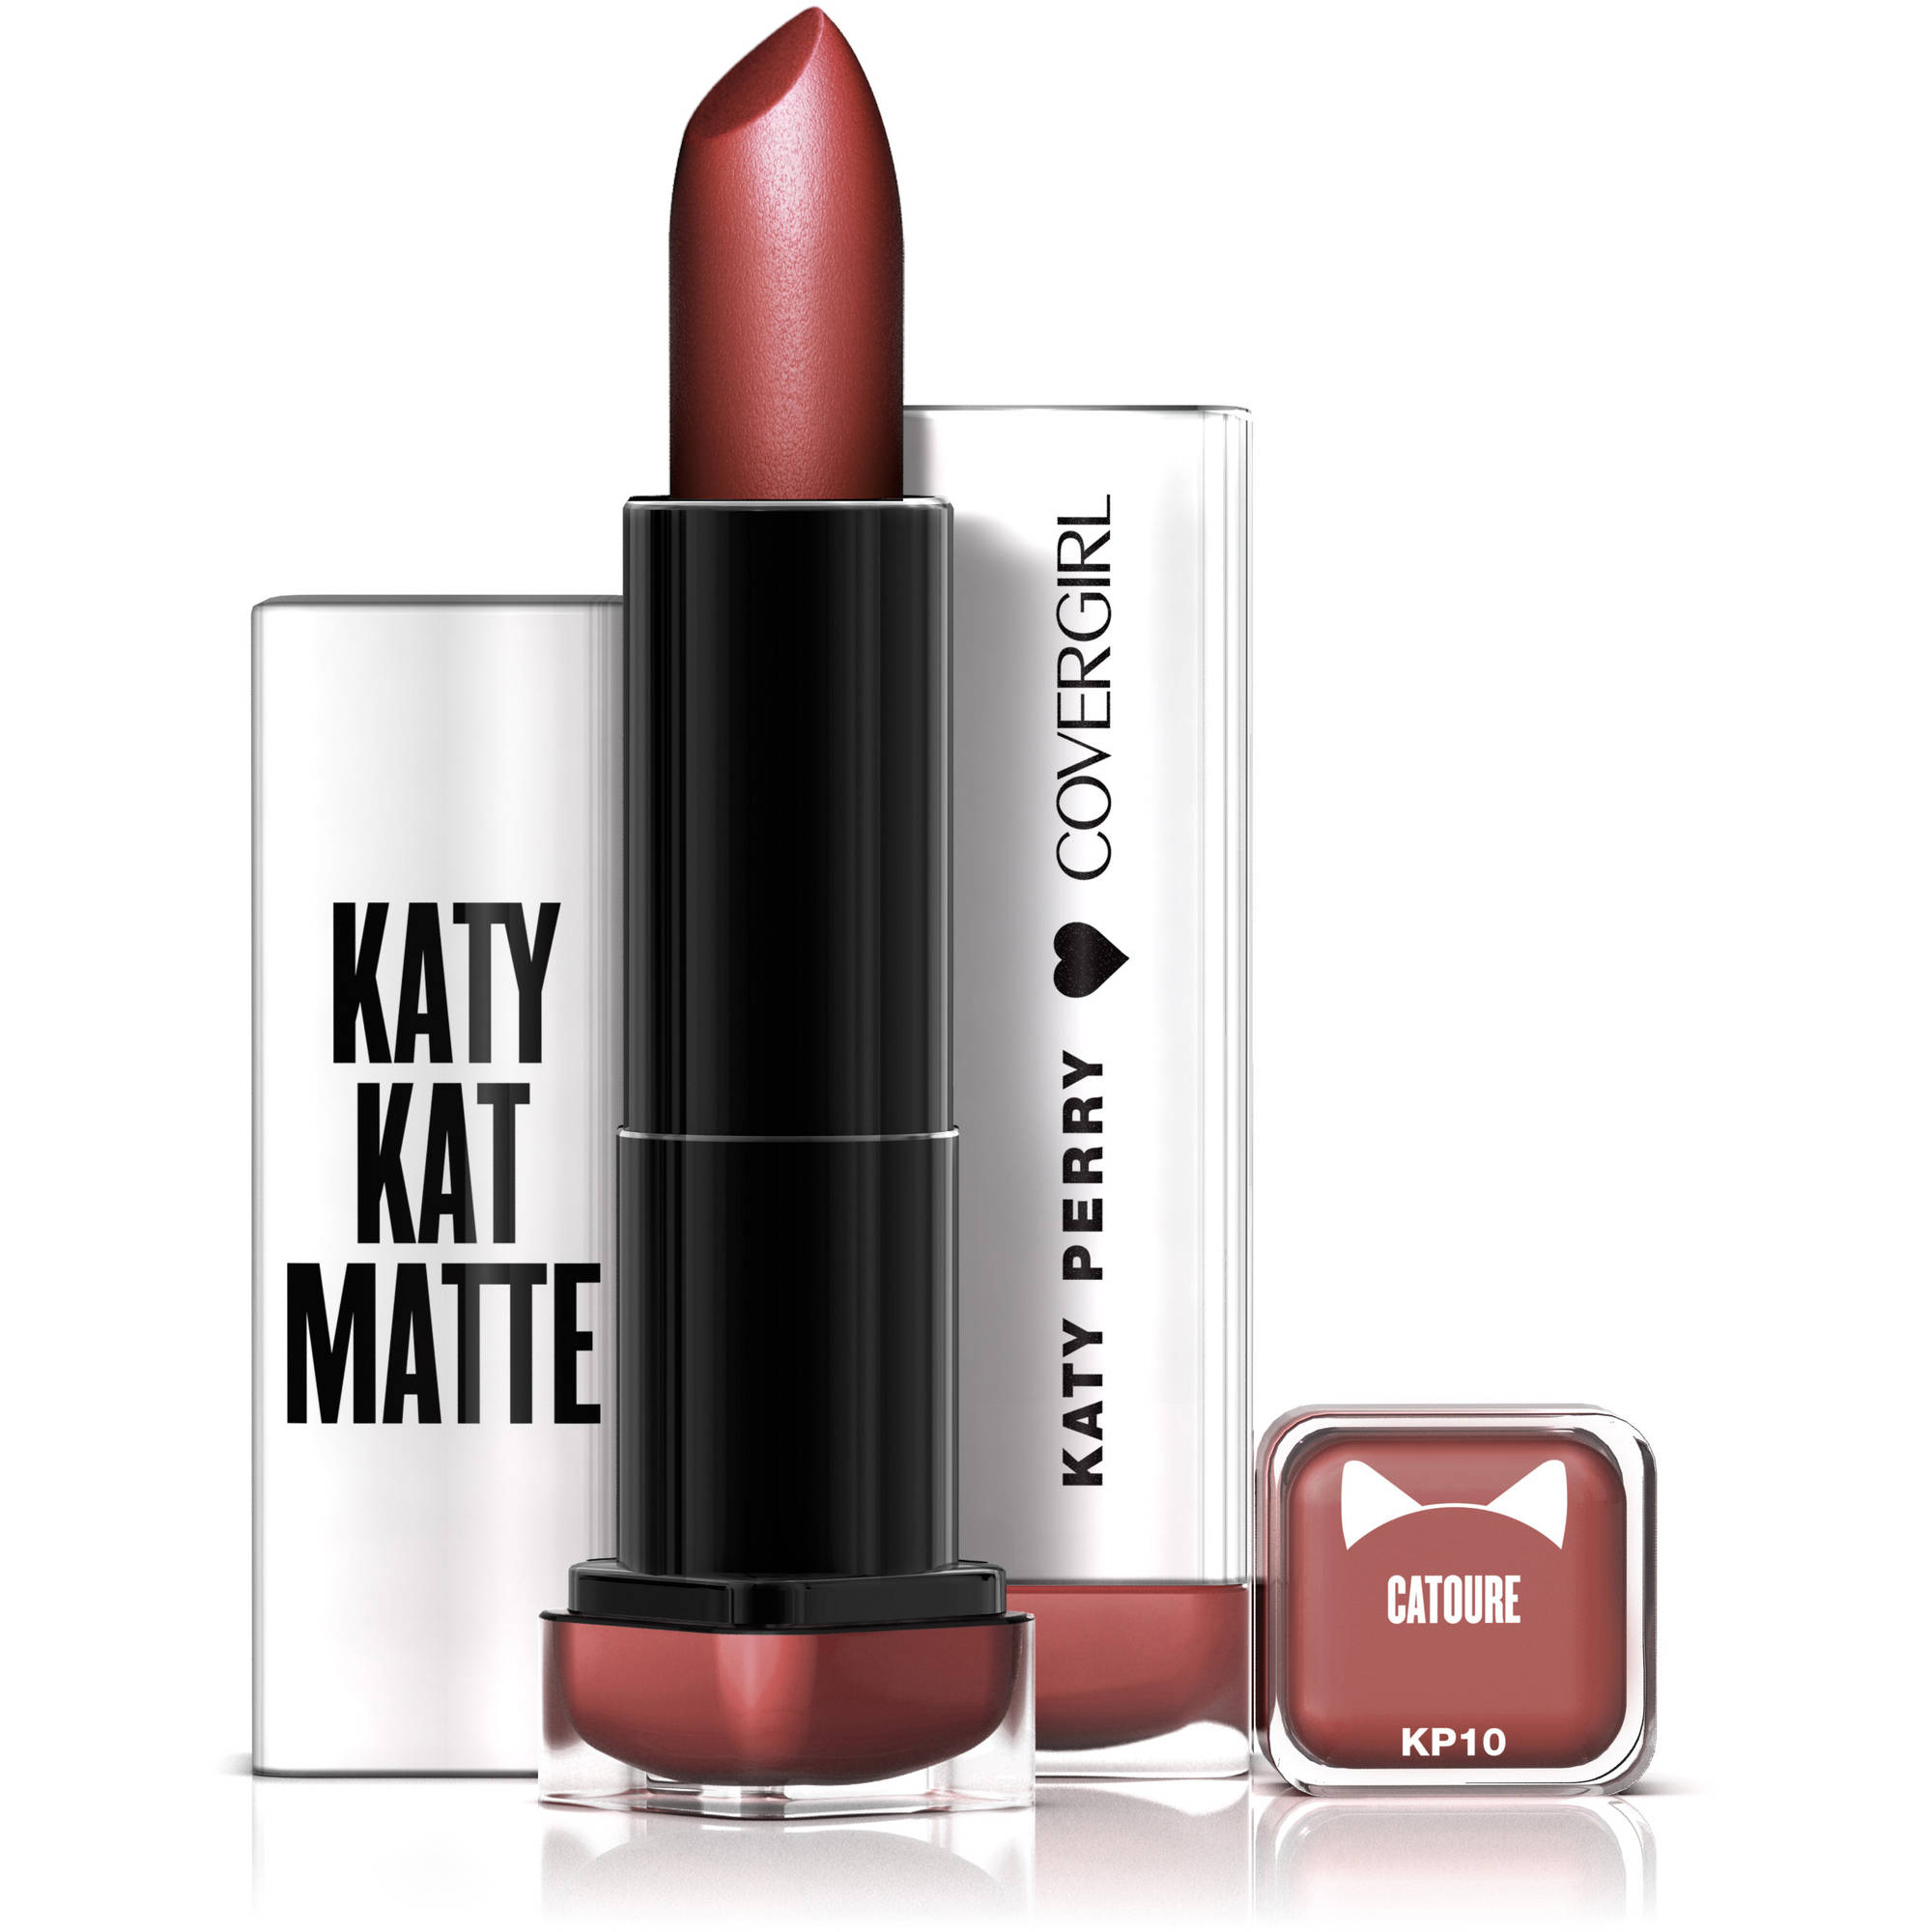 COVERGIRL Katy Kat Matte Lipstick Catoure, .12 oz created by Katy Perry